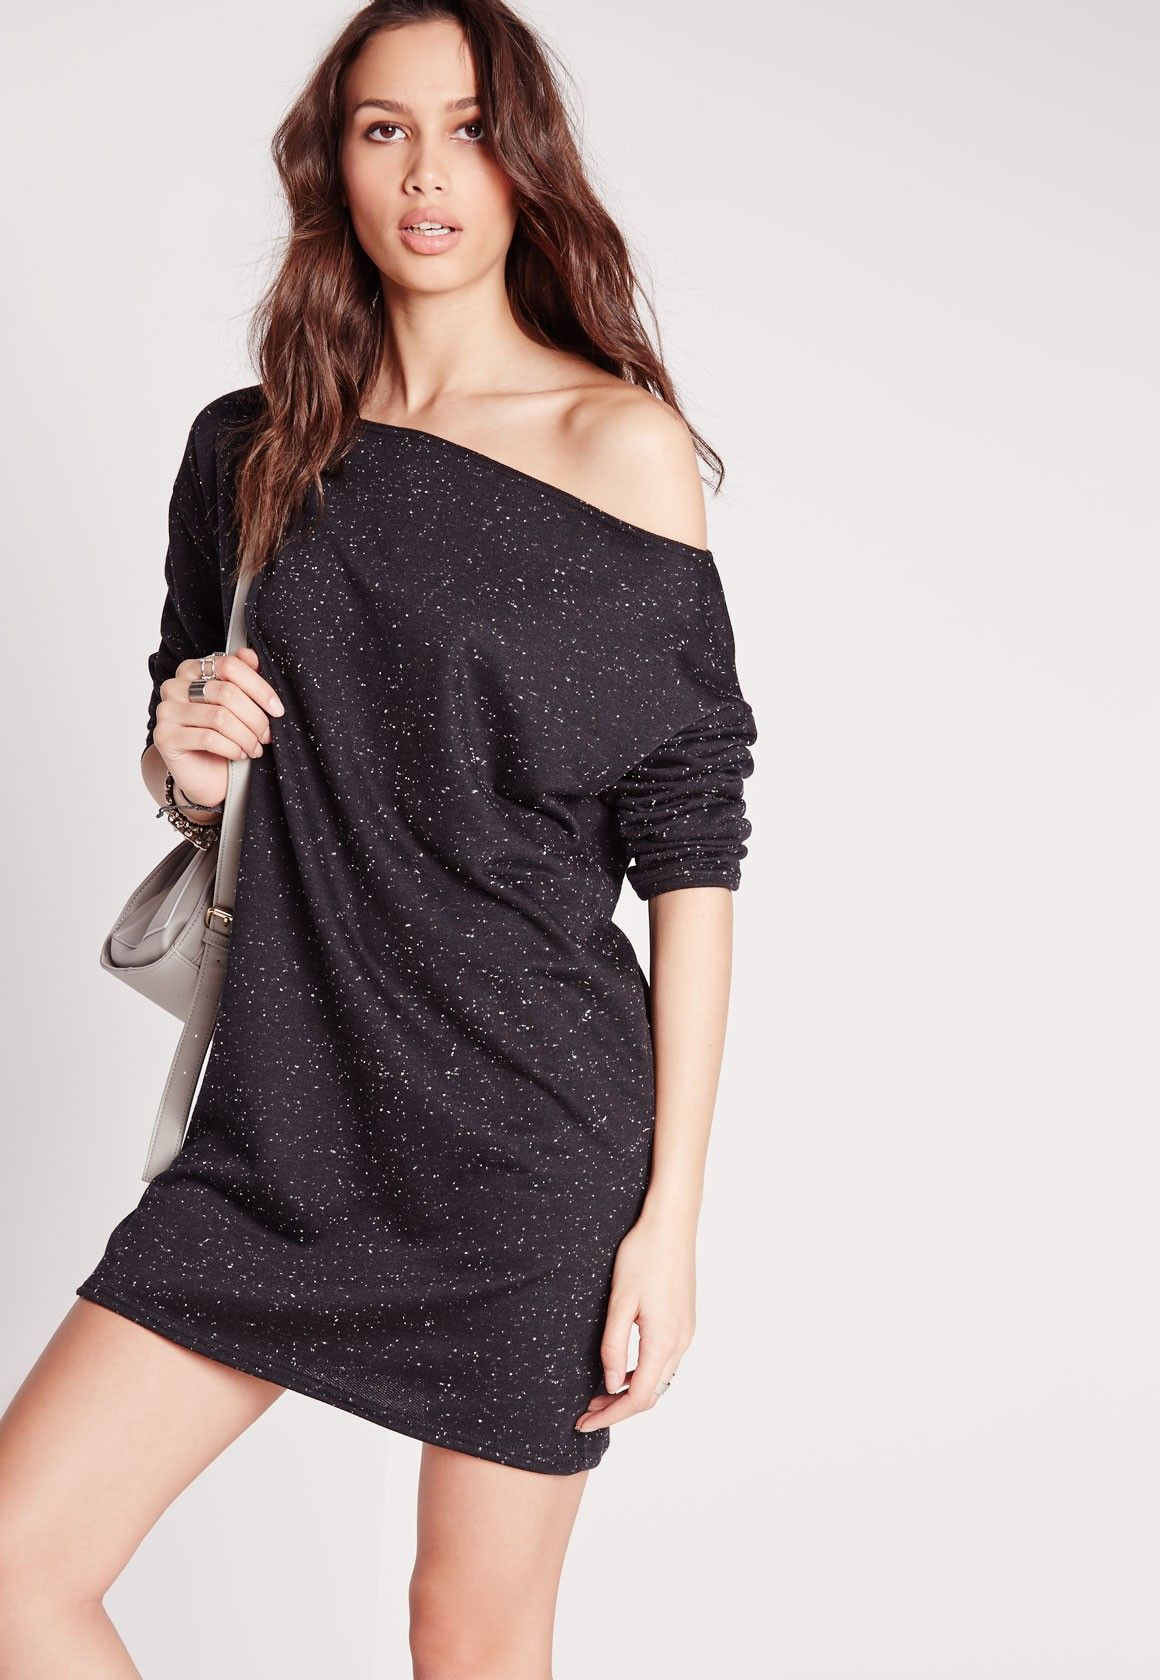 Up your day-time in this jumper dress. With its slash neck style and oversized fit, it's the ultimate in effortless dressing. The sexy shade of grey means it will look good teamed with every colour. We'll be wearing ours with trainers and a...